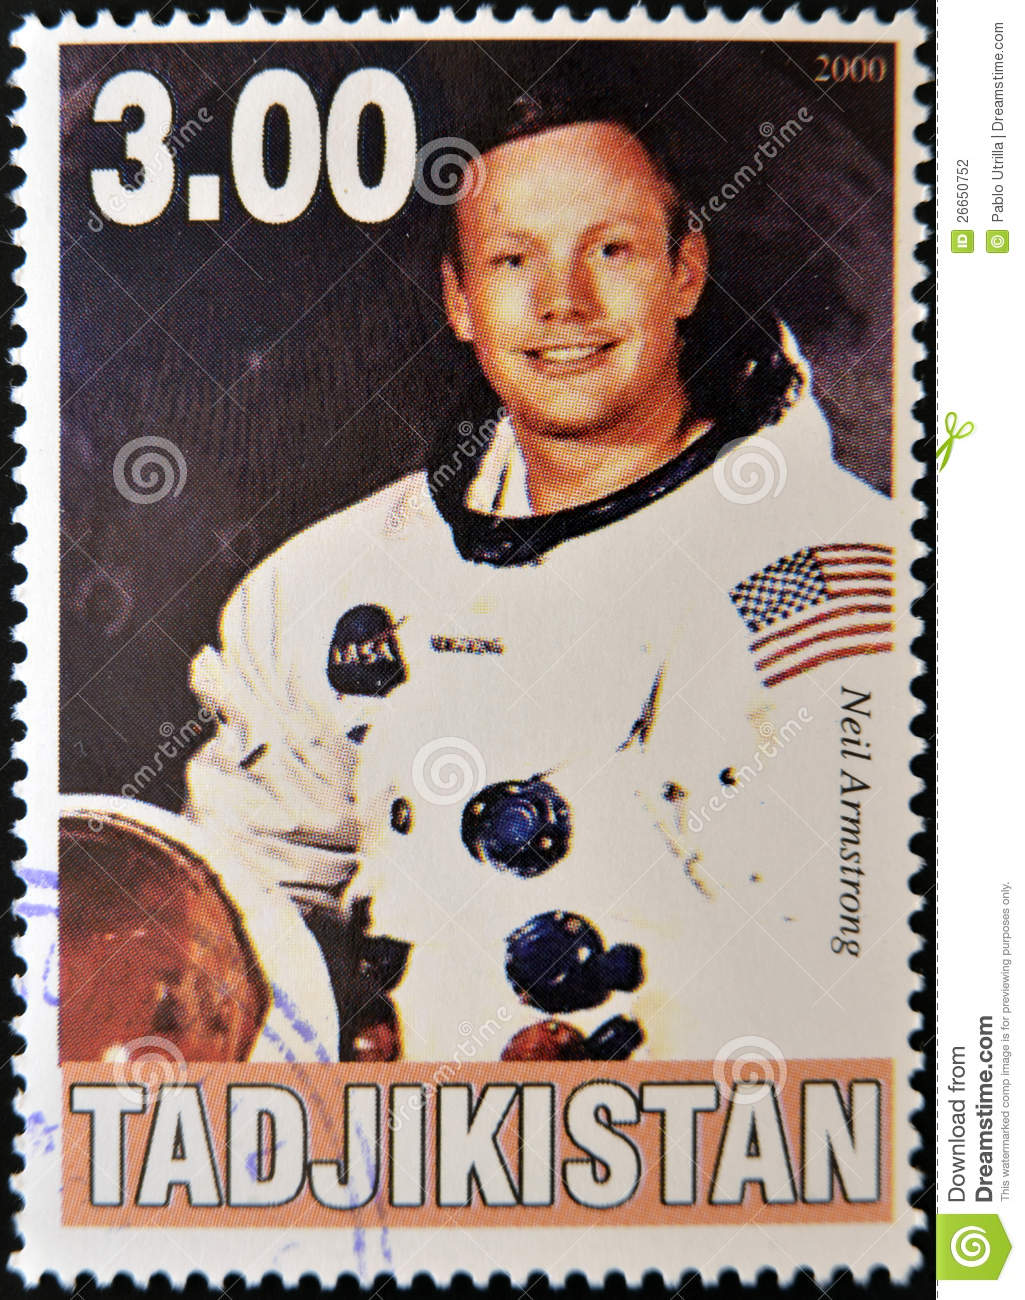 neil armstrong essay In developed societies, organised competitive sport for children often begins at age 6–7 years consequently, some children in their early teens have several years' experience of intensive training and of high-level international competition initial selection for, and retention in, elite sport takes place within a.